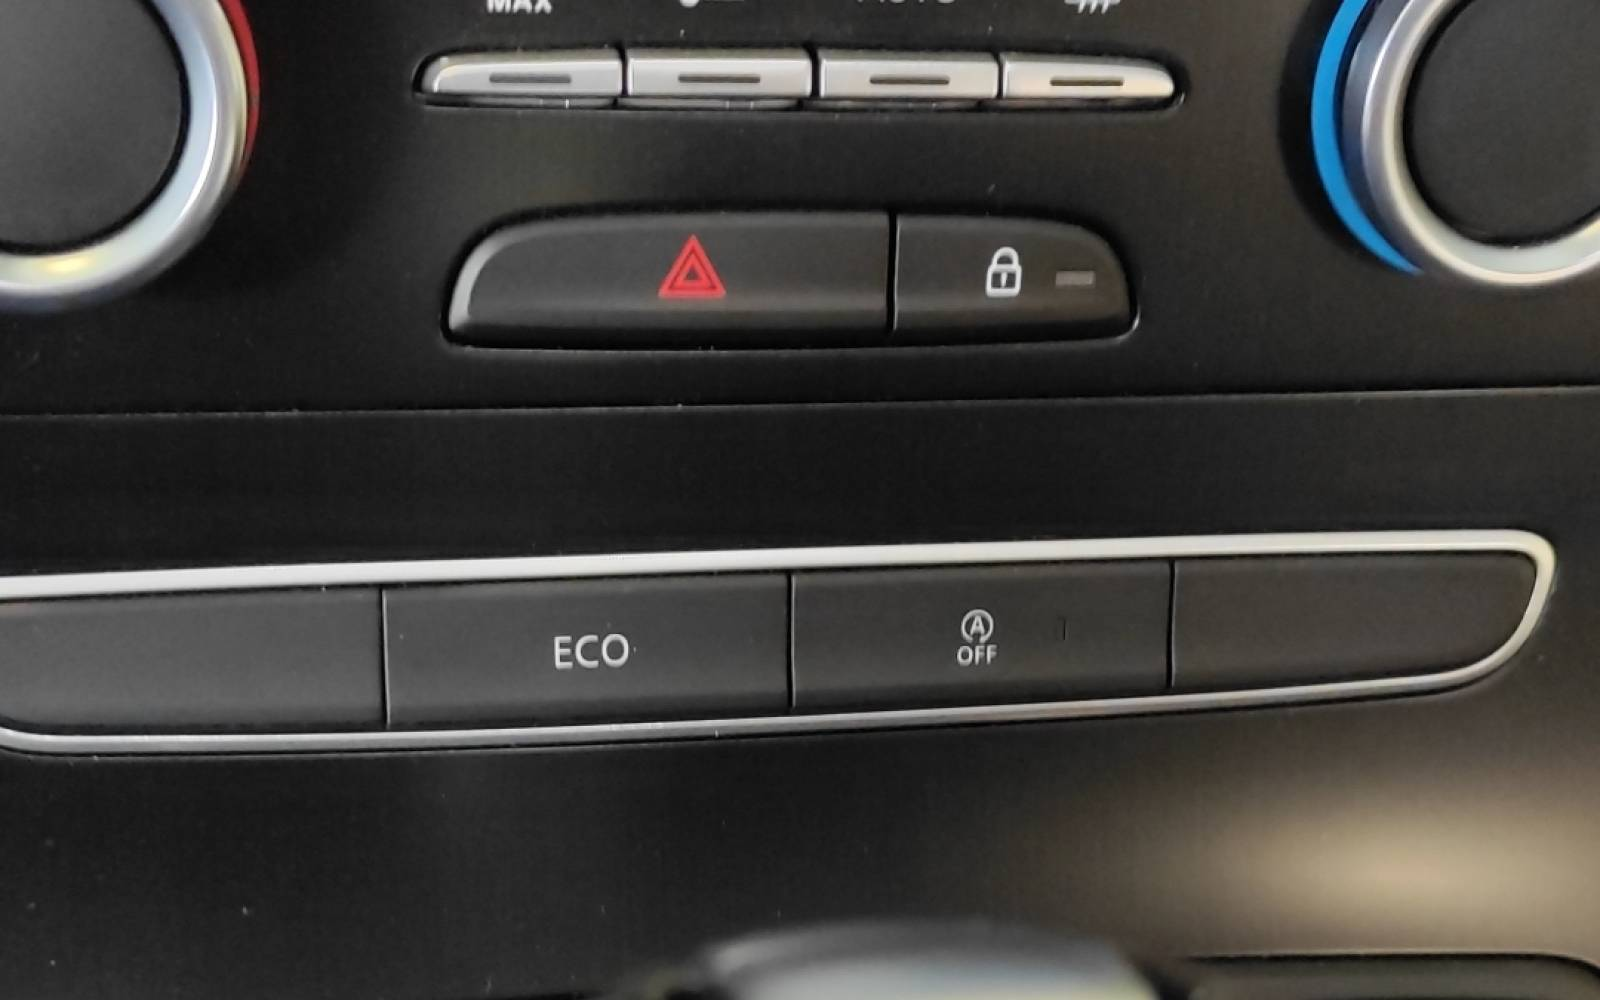 RENAULT Grand Scénic TCe 160 Energy EDC - véhicule d'occasion - Site Internet Faurie - Sarda - 24750 - Trelissac - 28